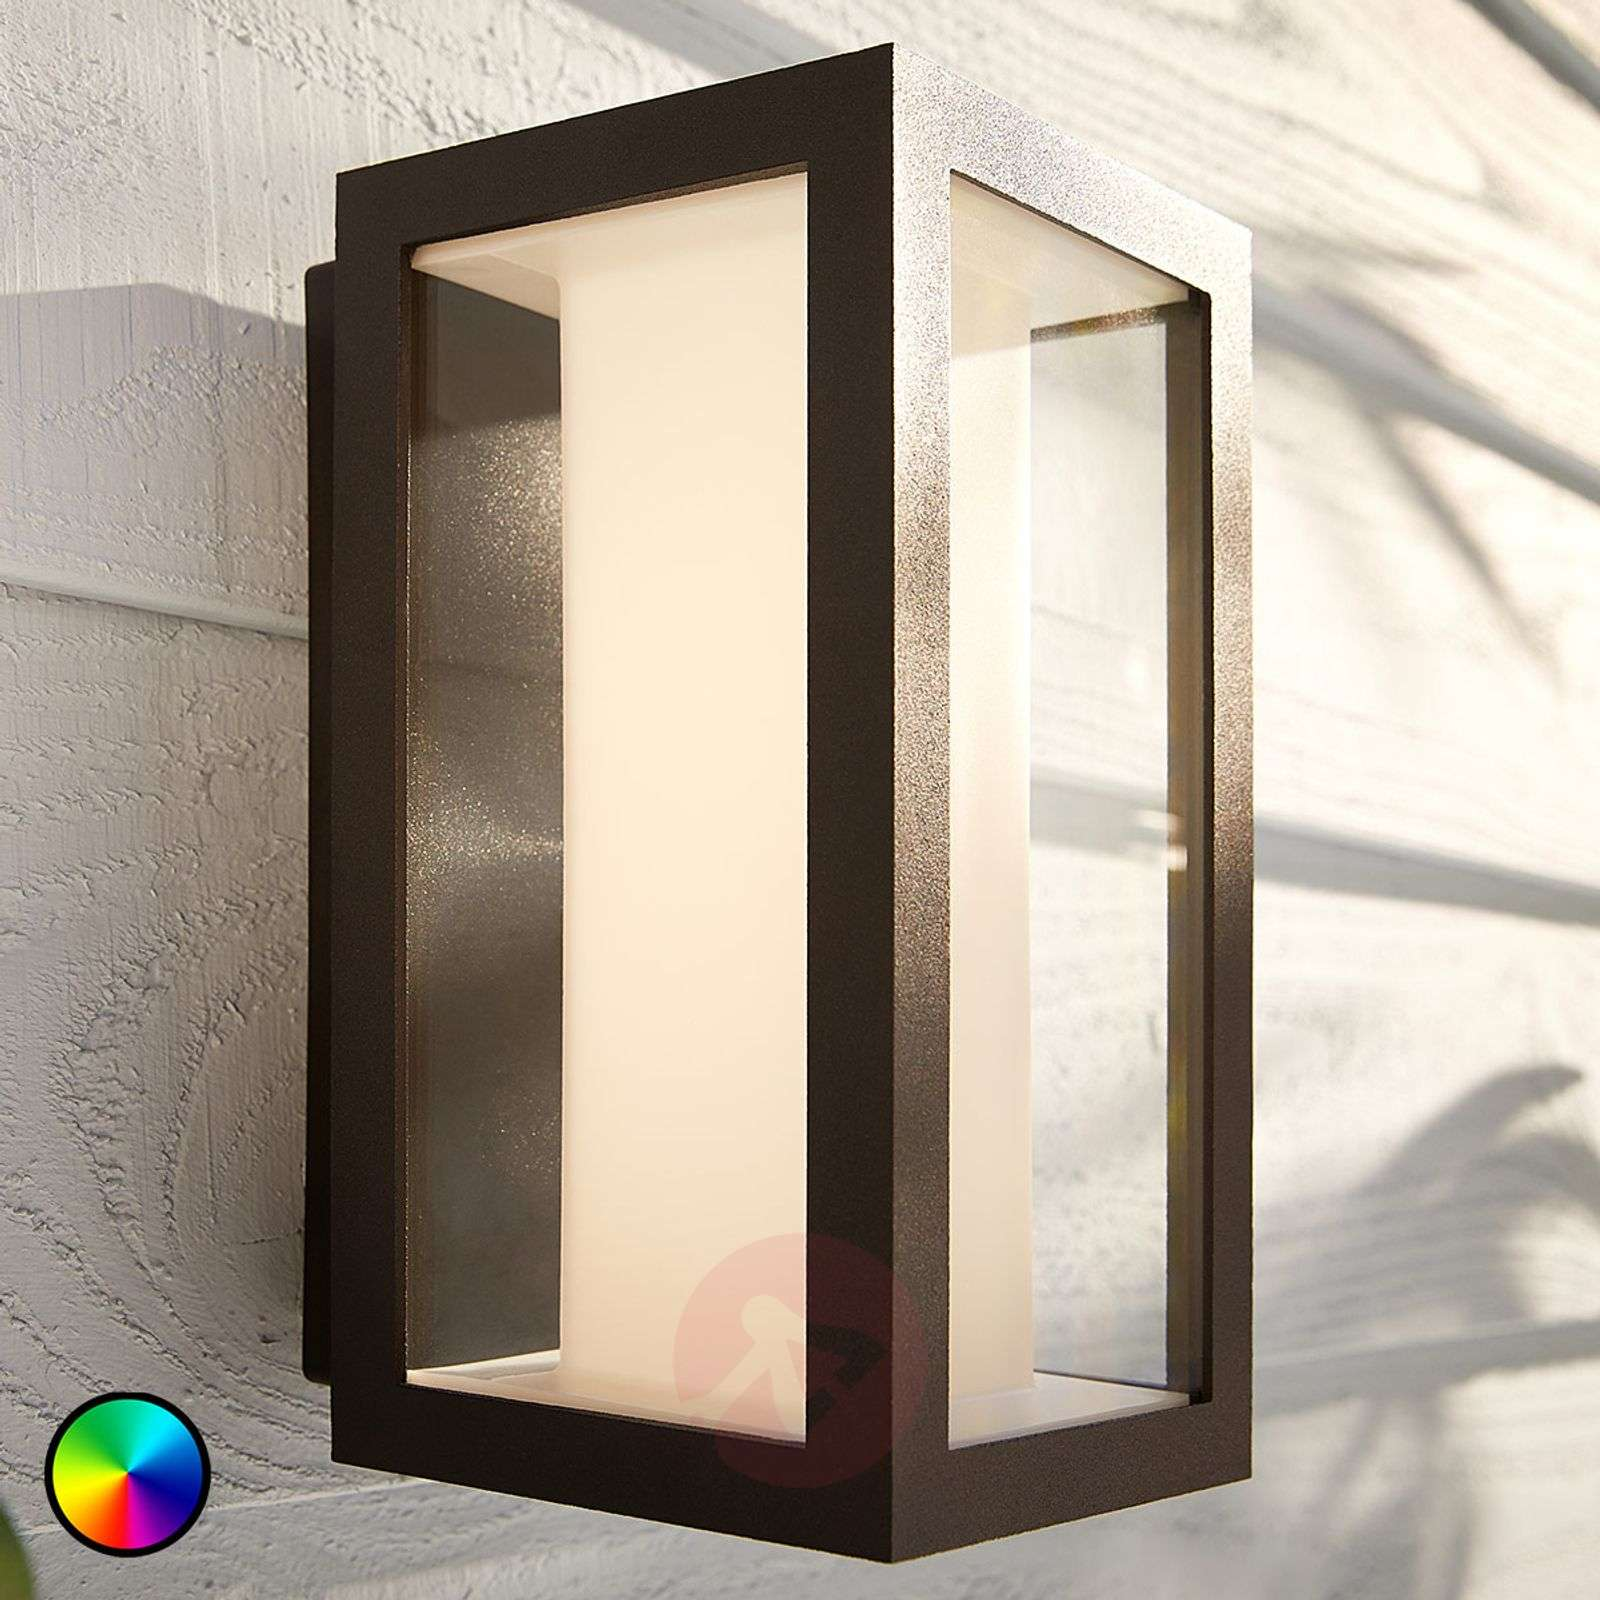 Philips Hue White+Color Impress wall light narrow | Lights.ie